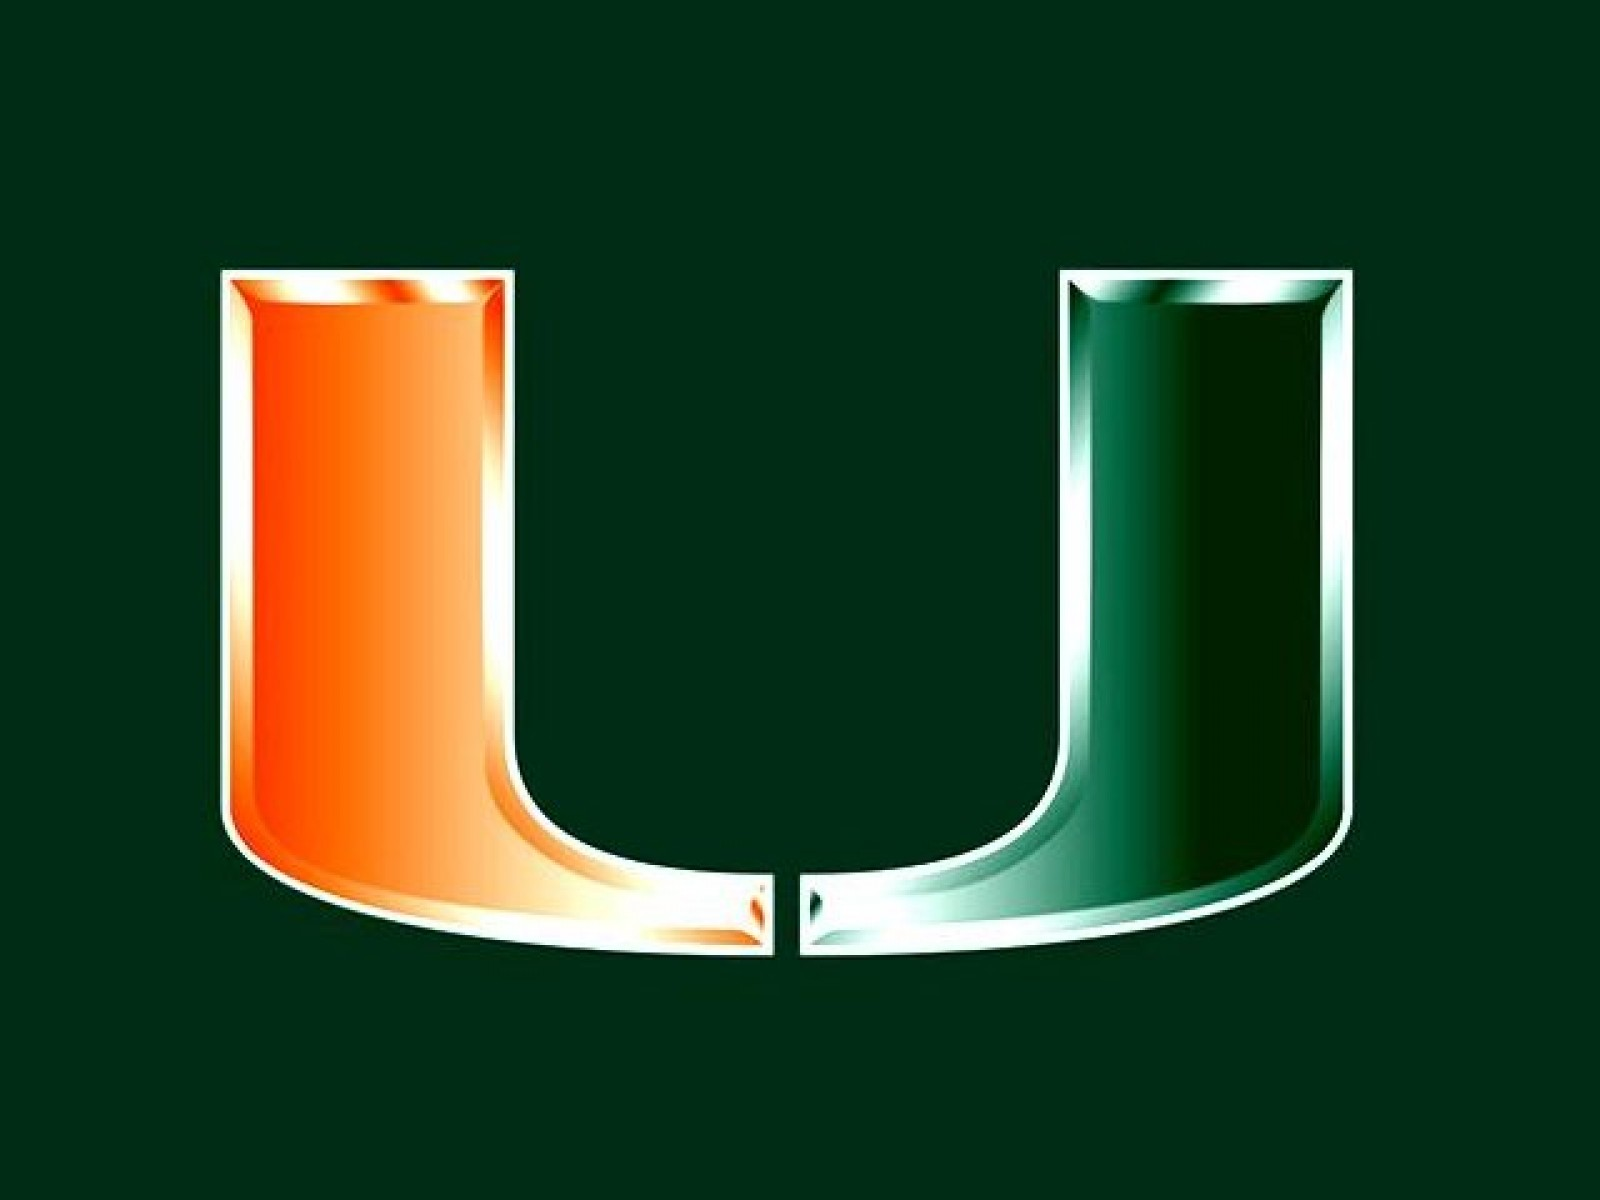 University of Miami Football Wallpaper - WallpaperSafari